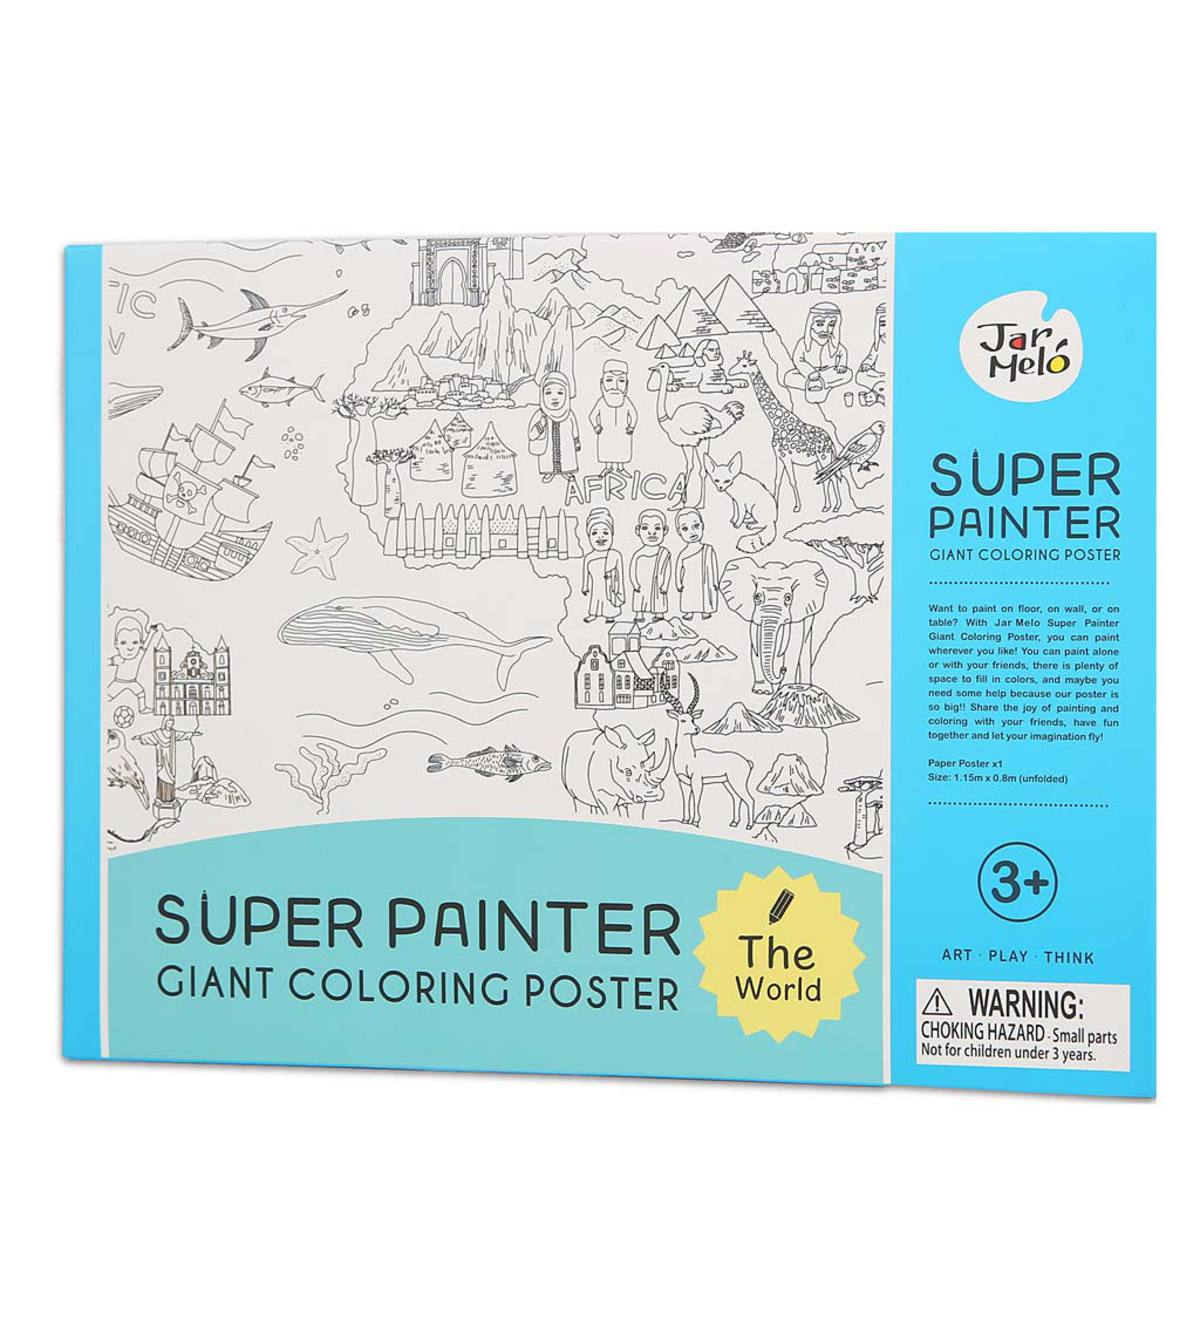 Giant Coloring Poster - The World